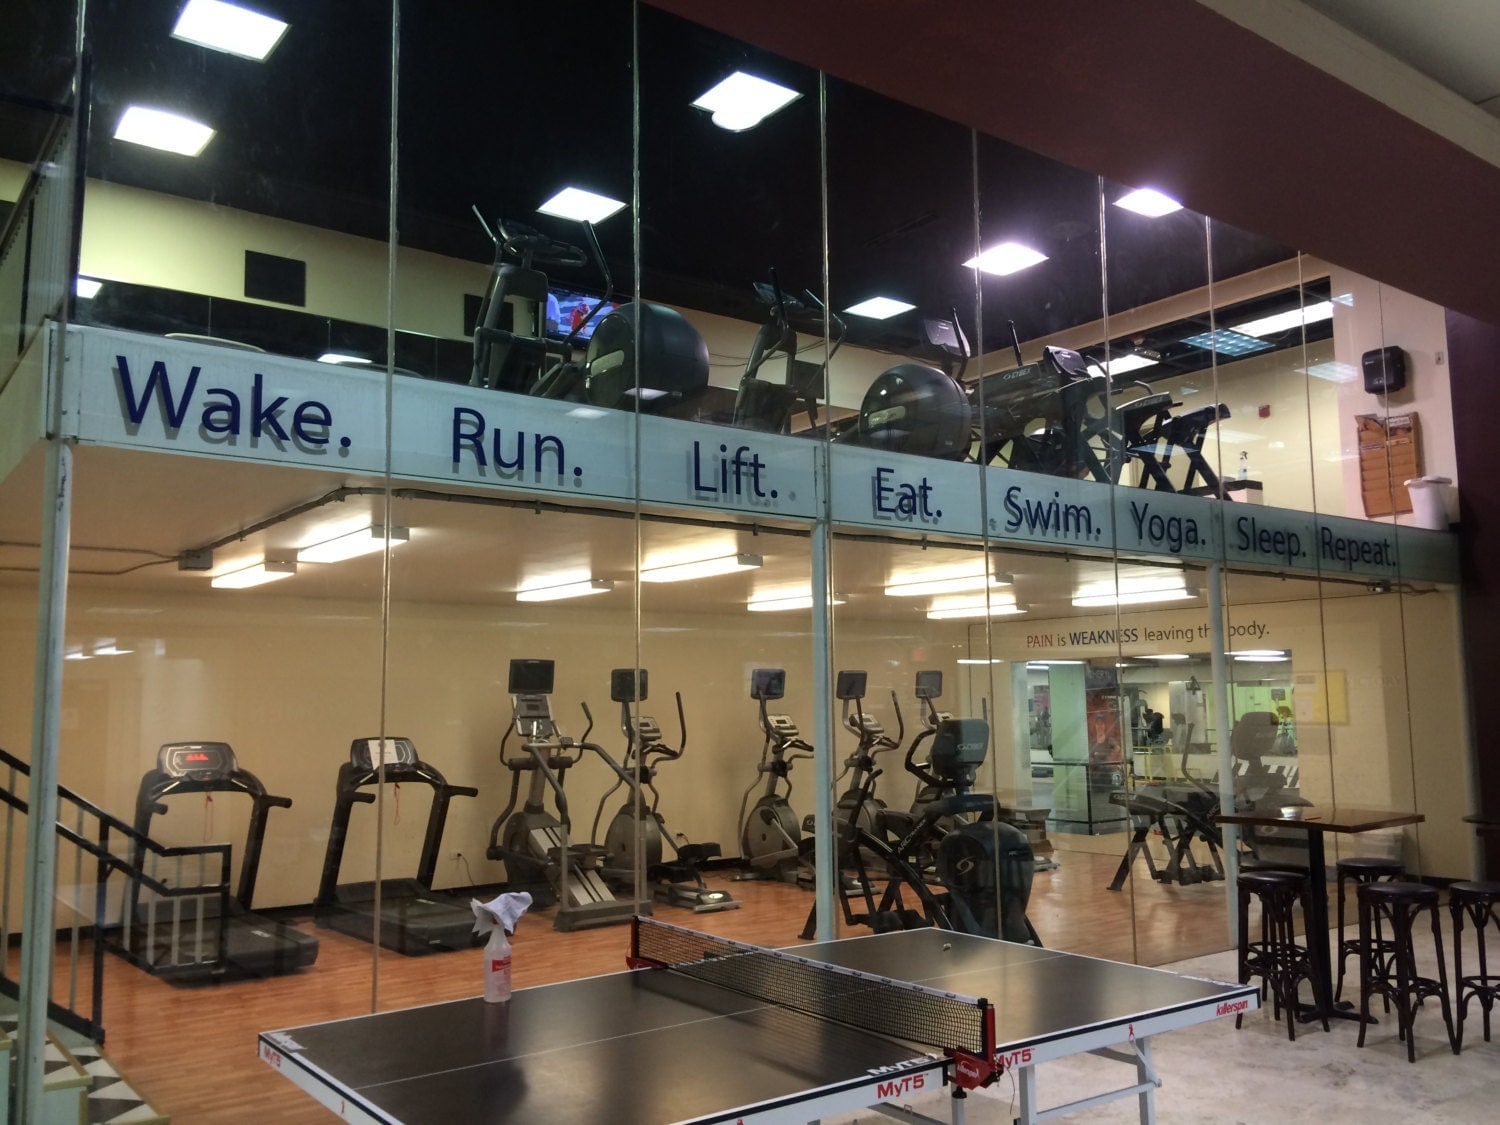 Gym decorating ideas work out vinyl wall decals wake run